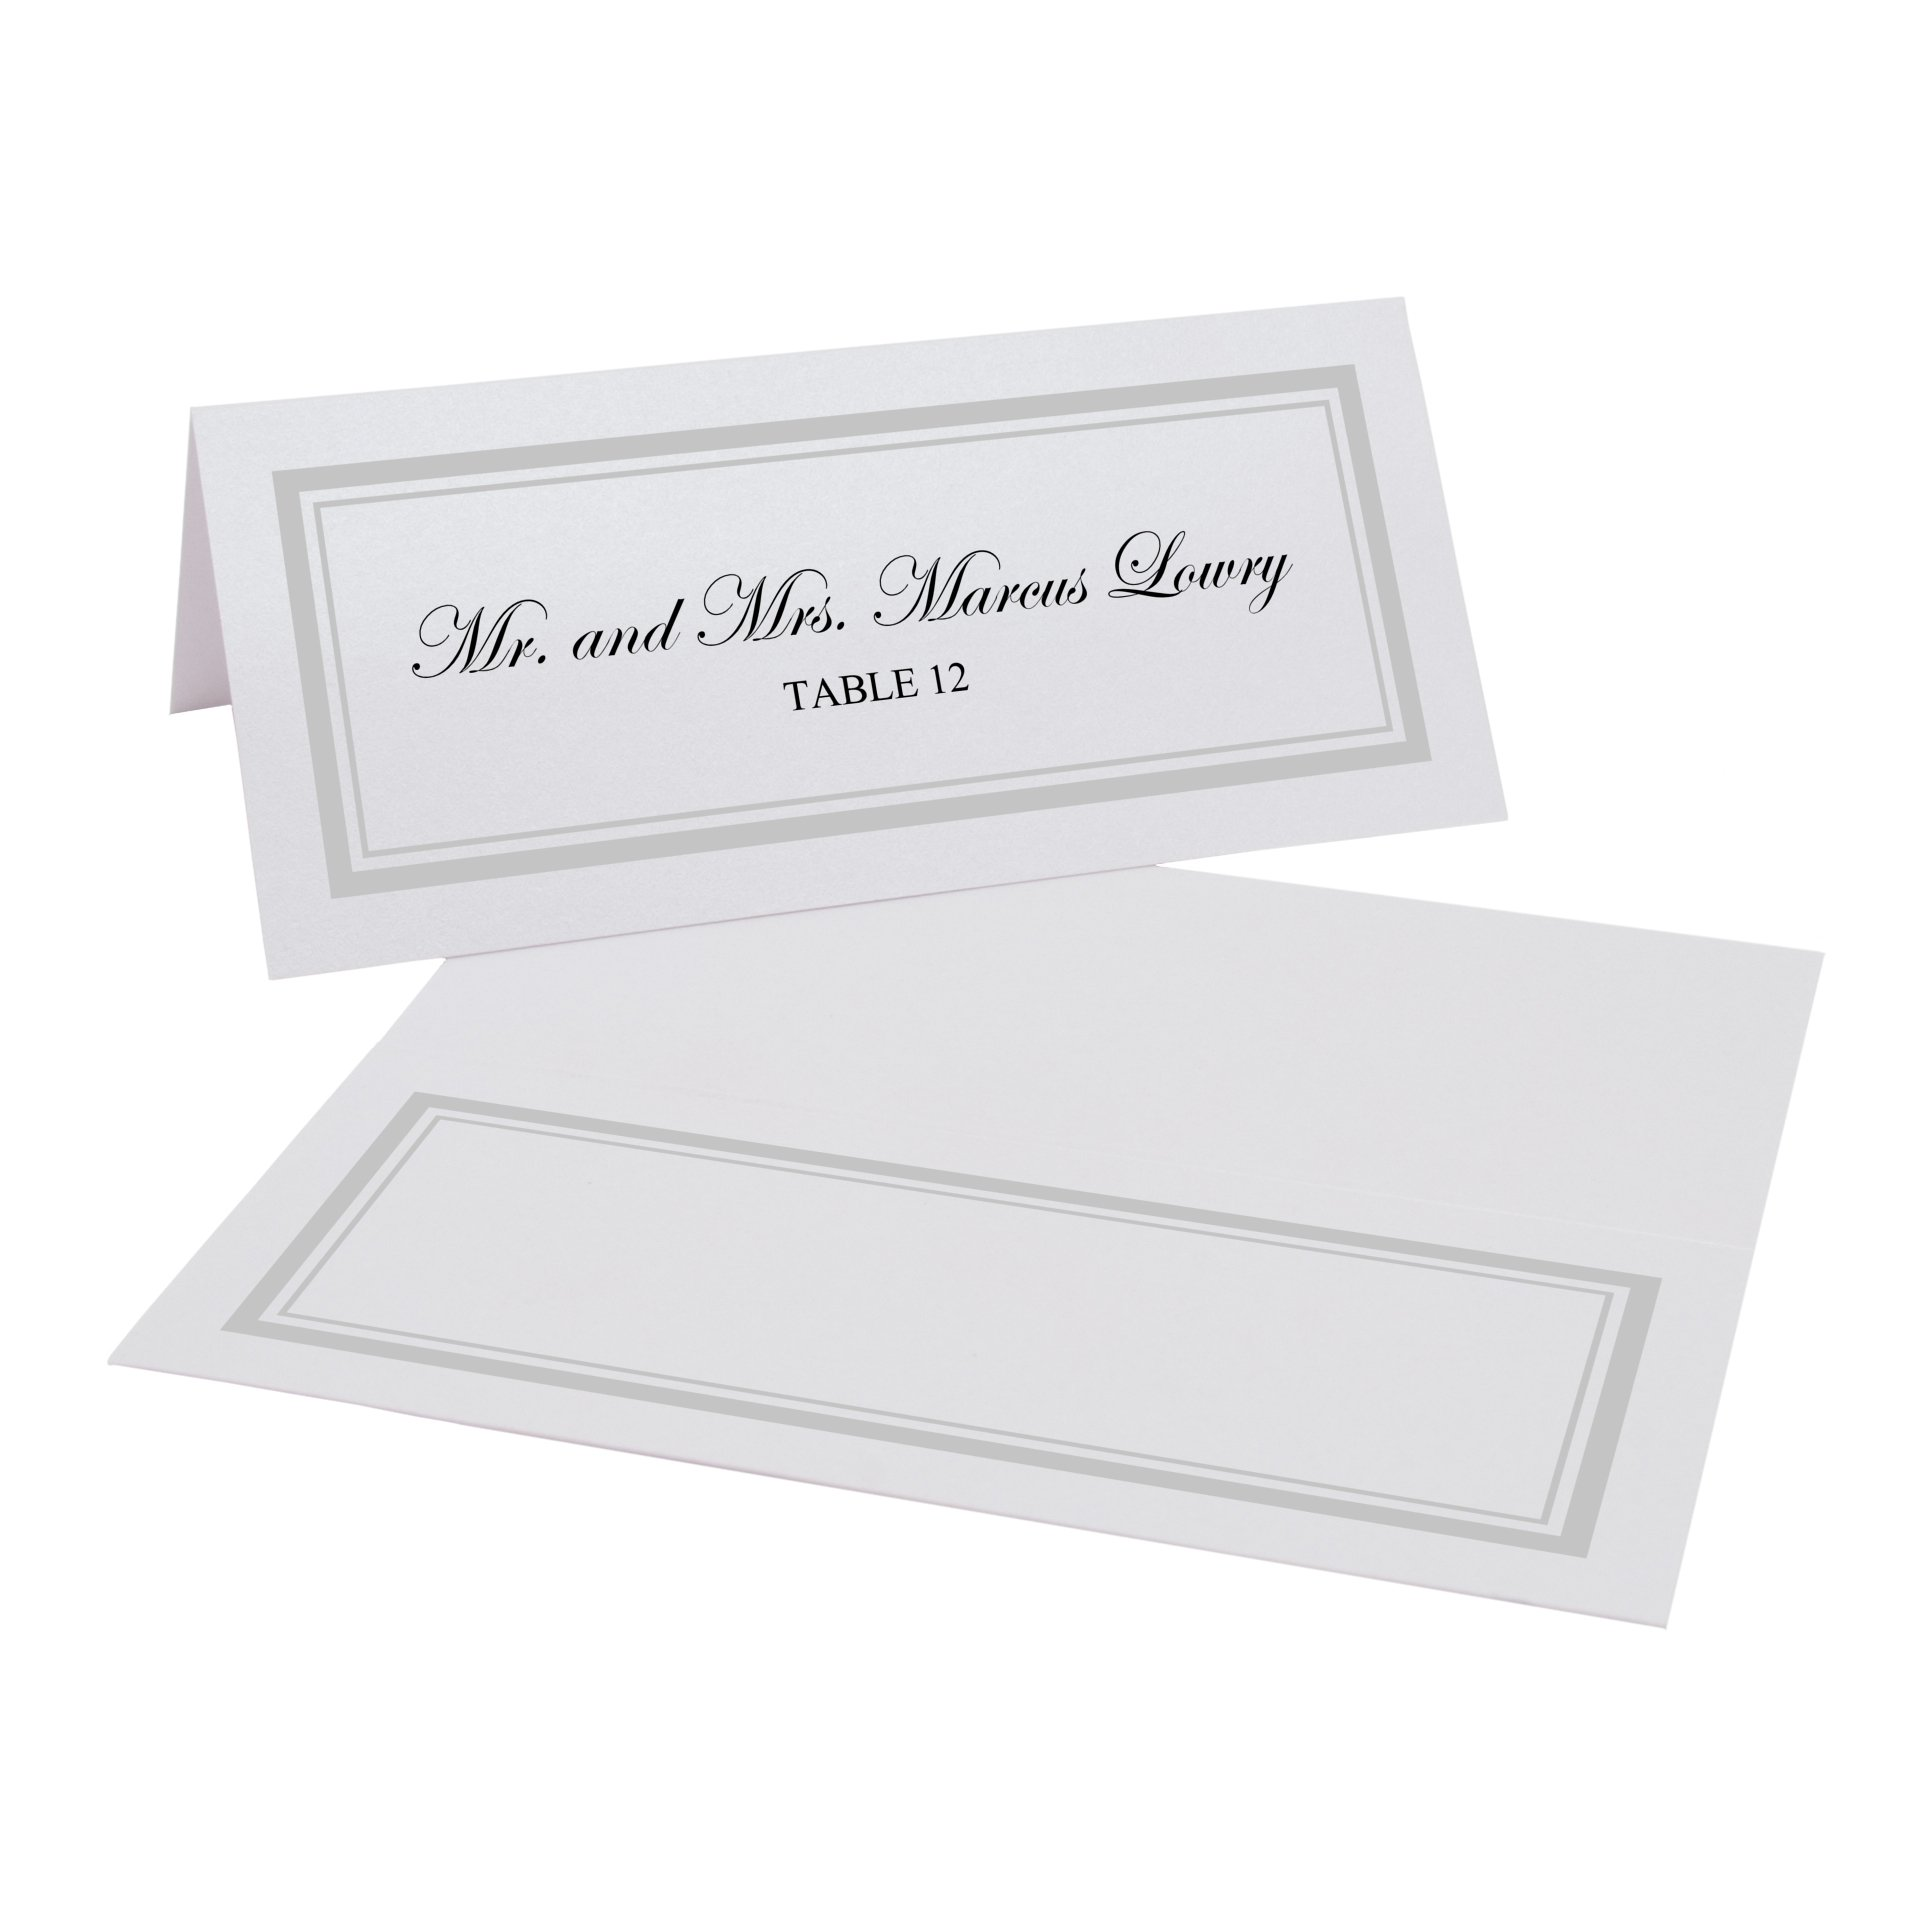 Documents and Designs Double Line Border Easy Print Place Cards (Select Color), Silver, Set of 150 (25 Sheets)